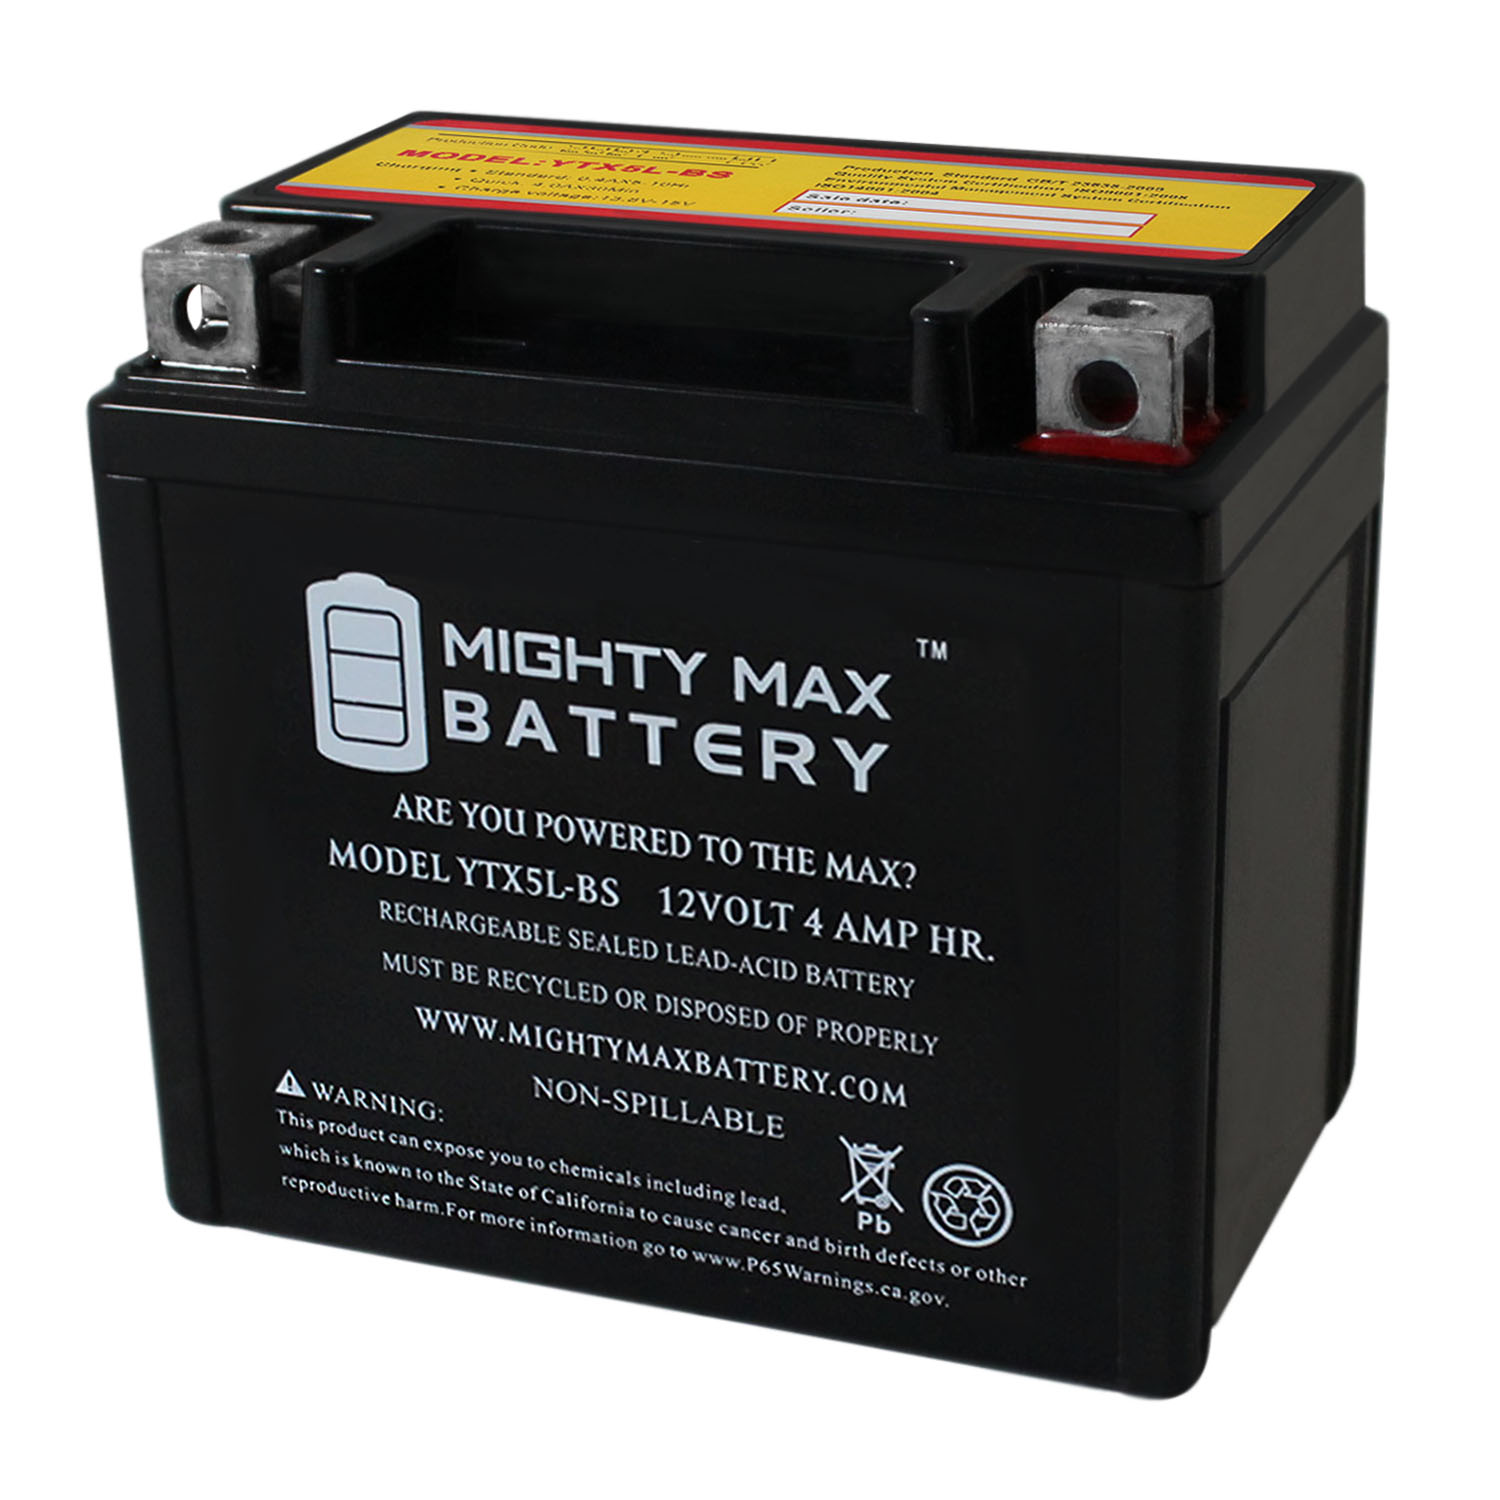 YTX5L-BS MOTORCYCLE BATTERY REPLACEMENT - 12V 4AH - 55 CCA